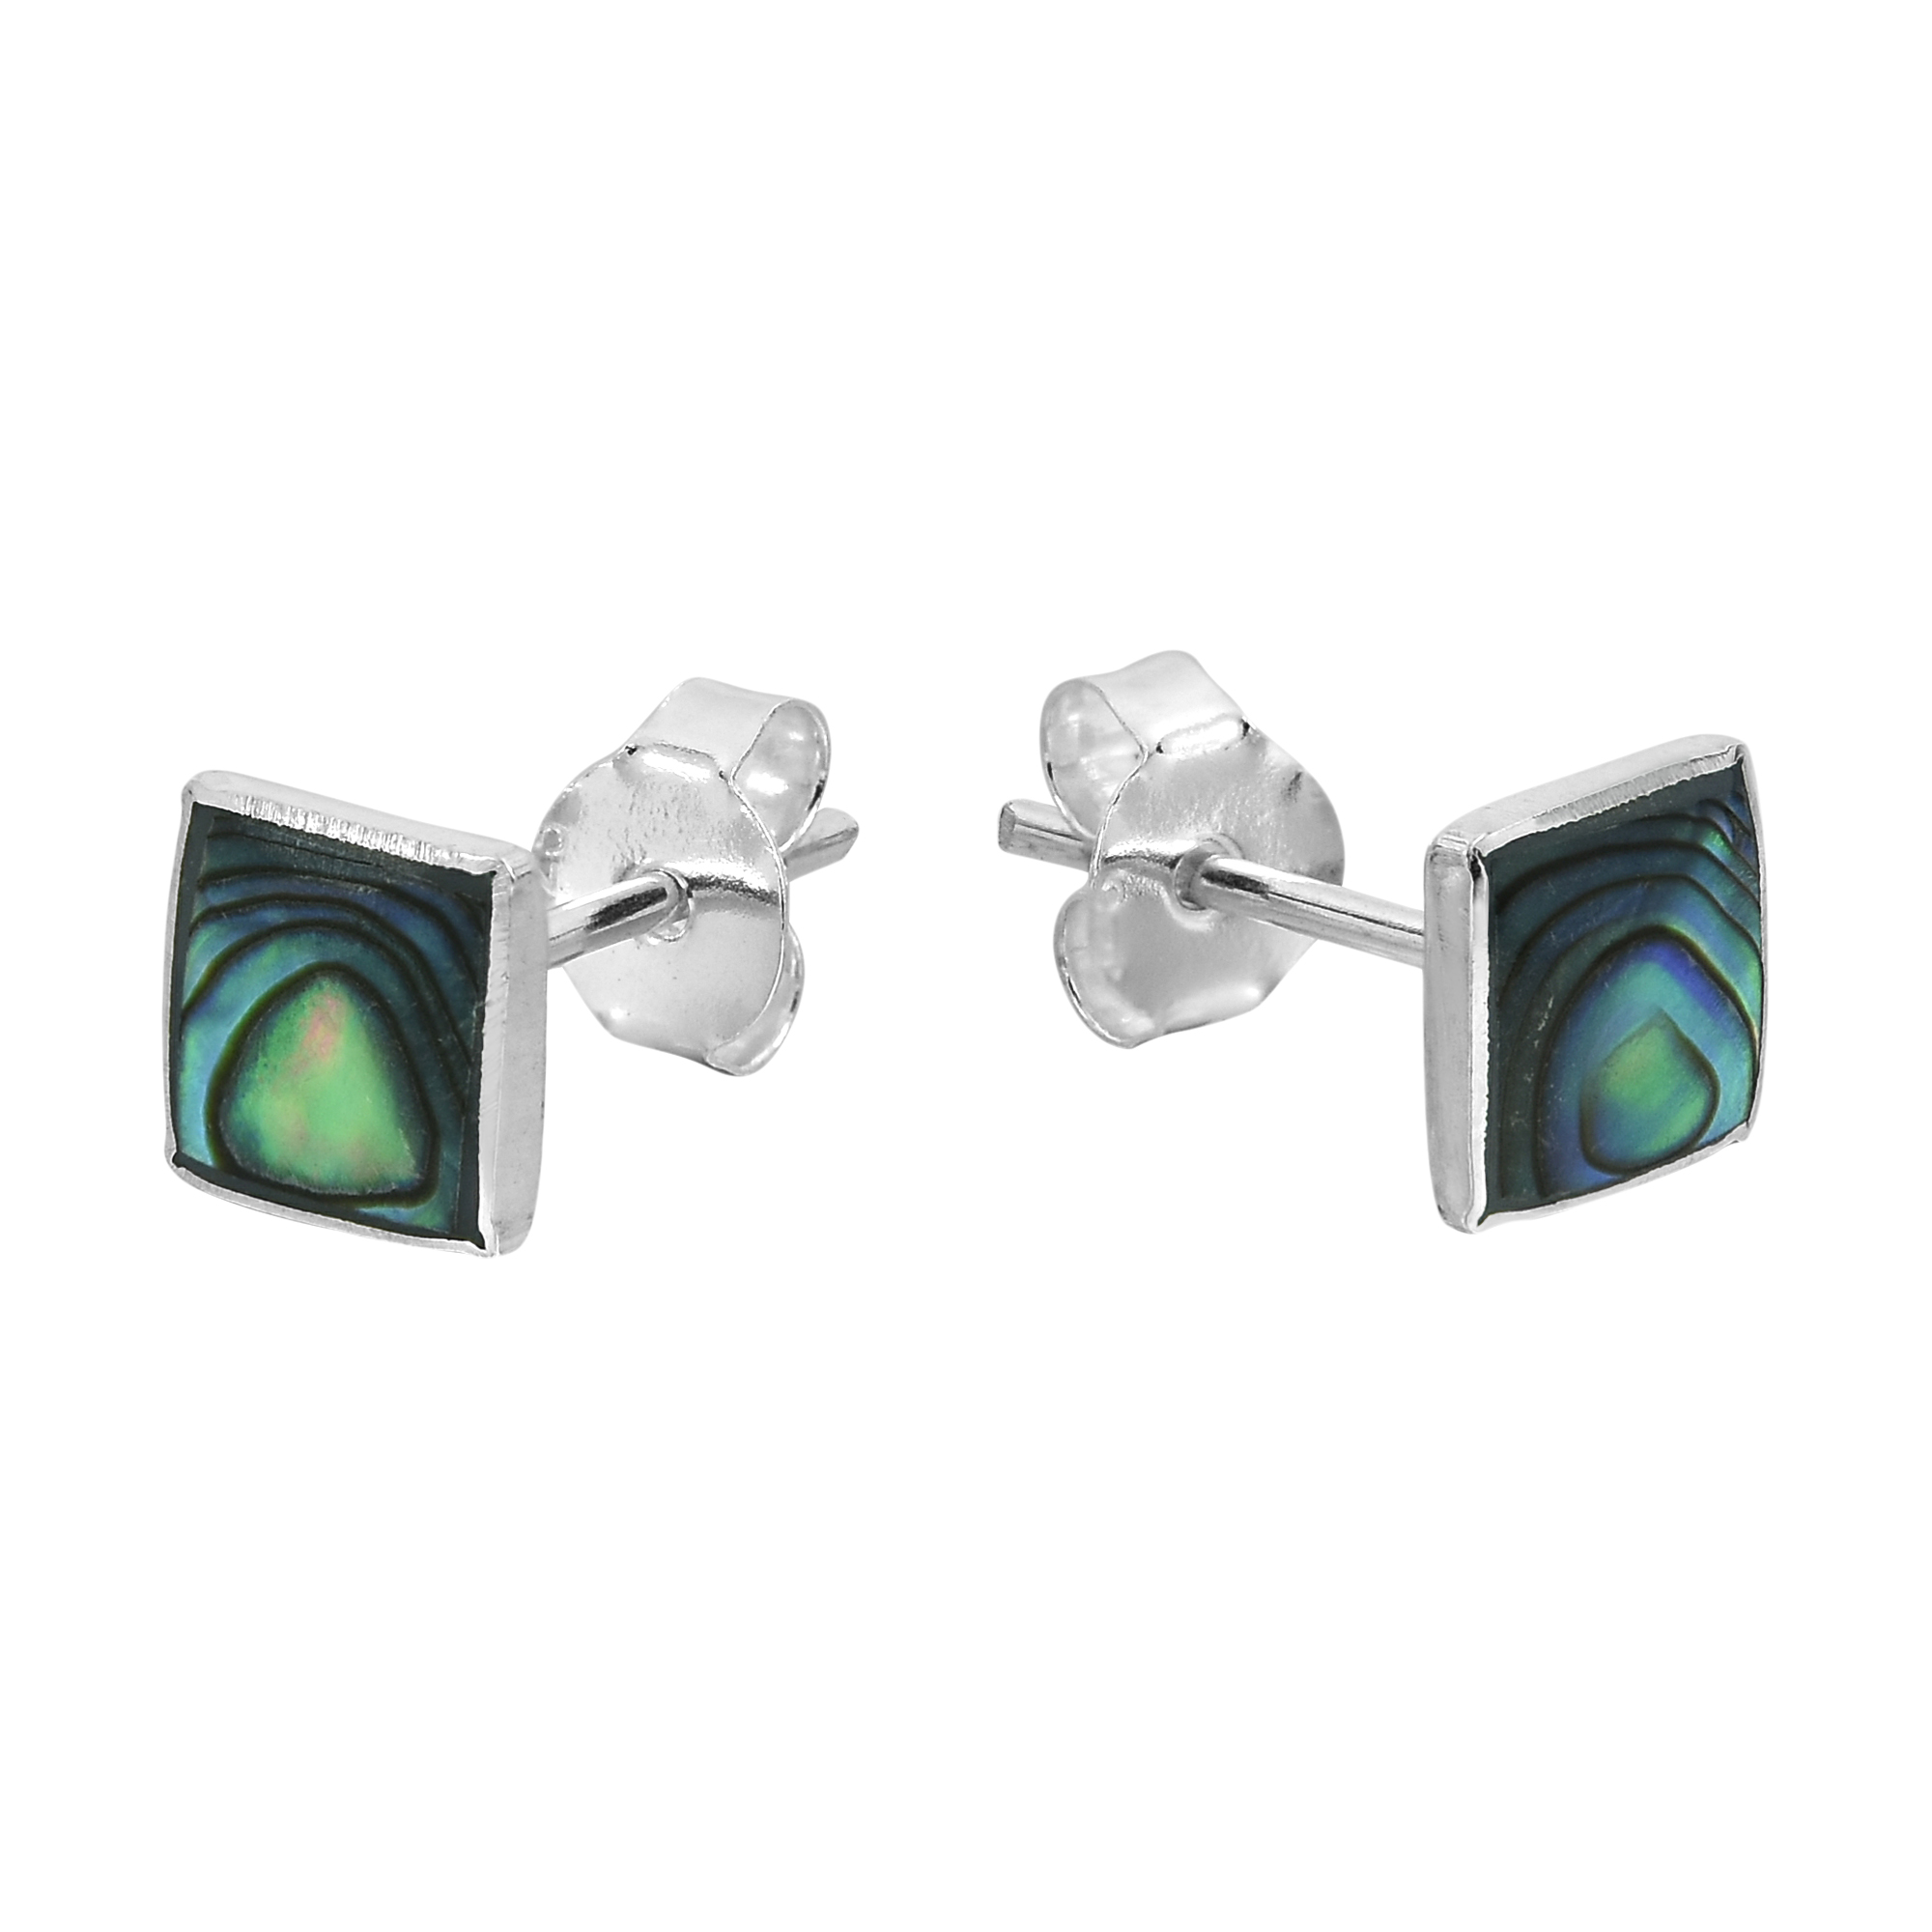 heart artisan se designed this products details stone seashell and in accents inlaid inlay trendy earrings khun ov stud jai which cute silver aeravida beautiful square comes abalone oval round piece